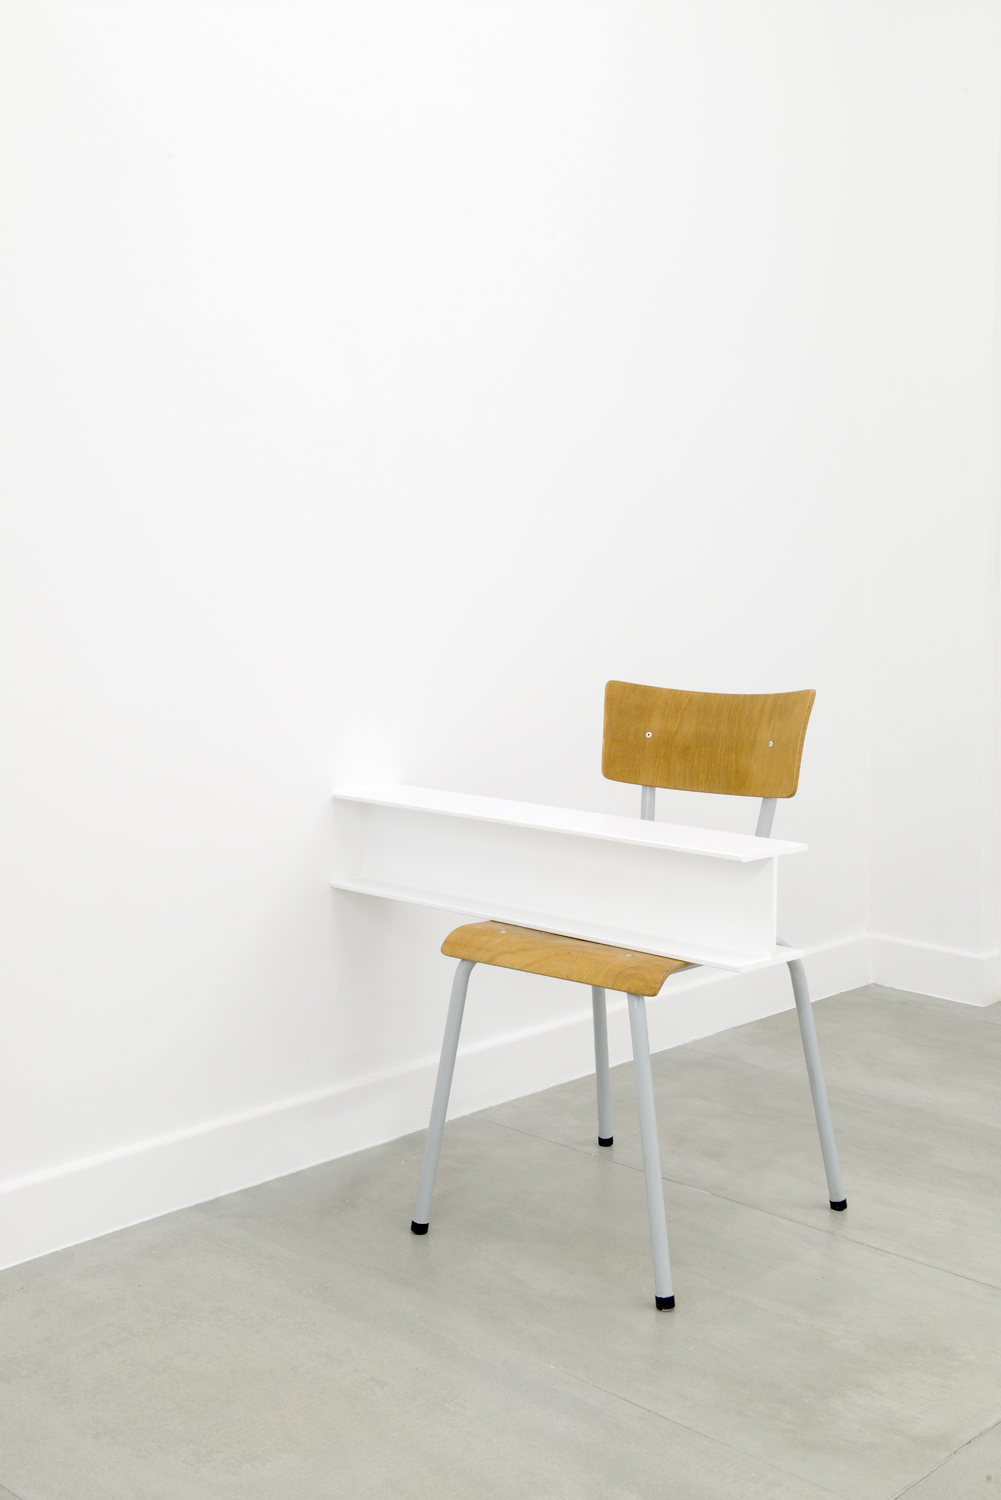 Roeland Tweelinckx,  Replacements  (2019).White beam, chair,80 x 50 x 78 cm